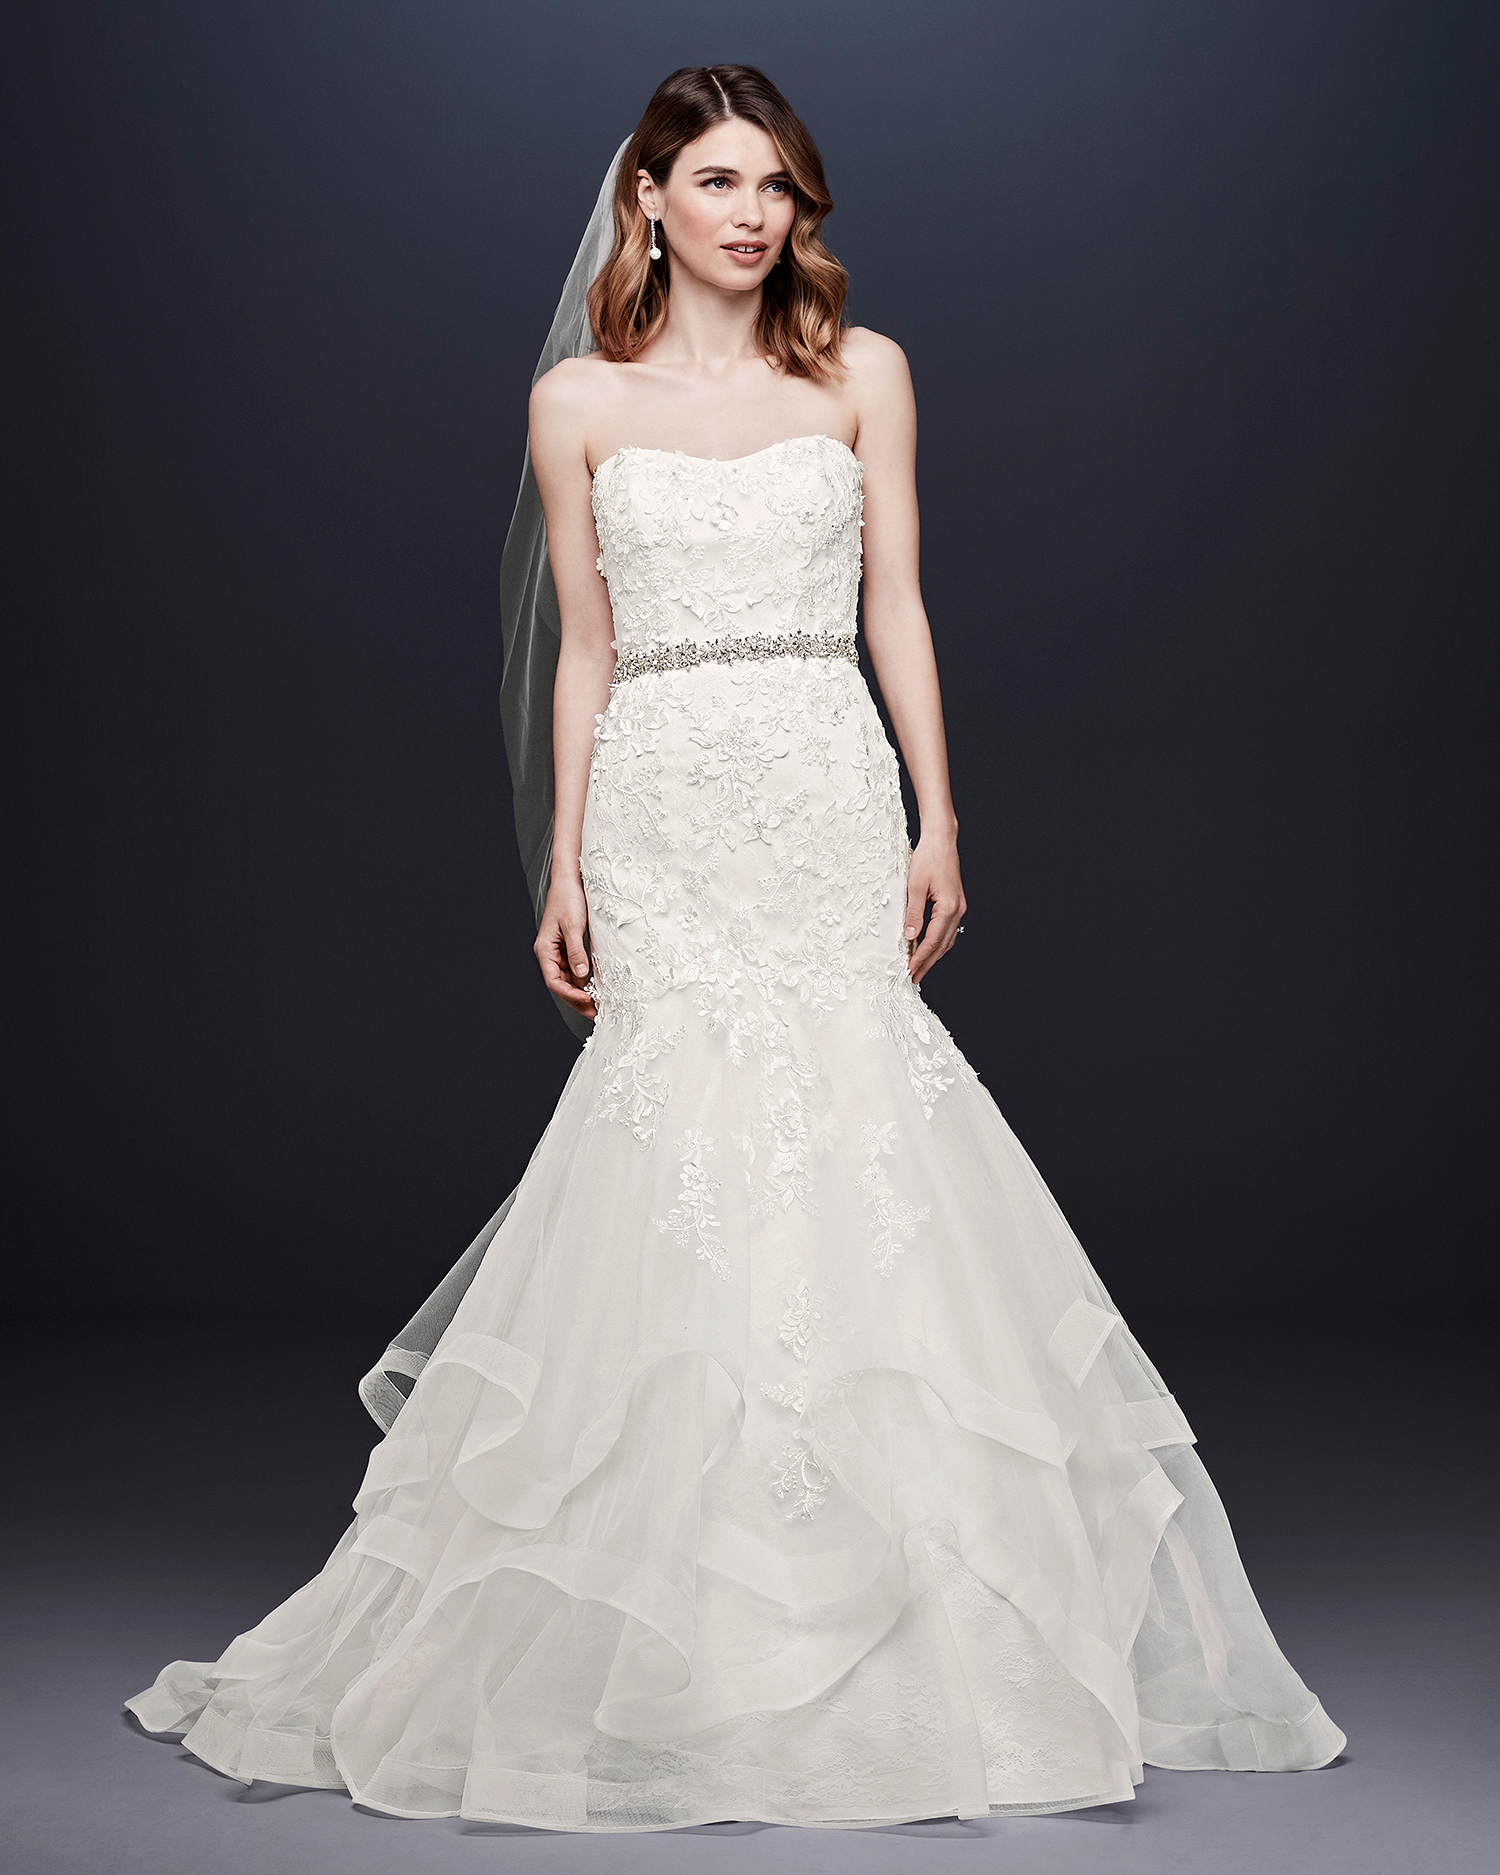 davids bridal wedding dress fall 2019 embroidered trumpet with tiered skirt